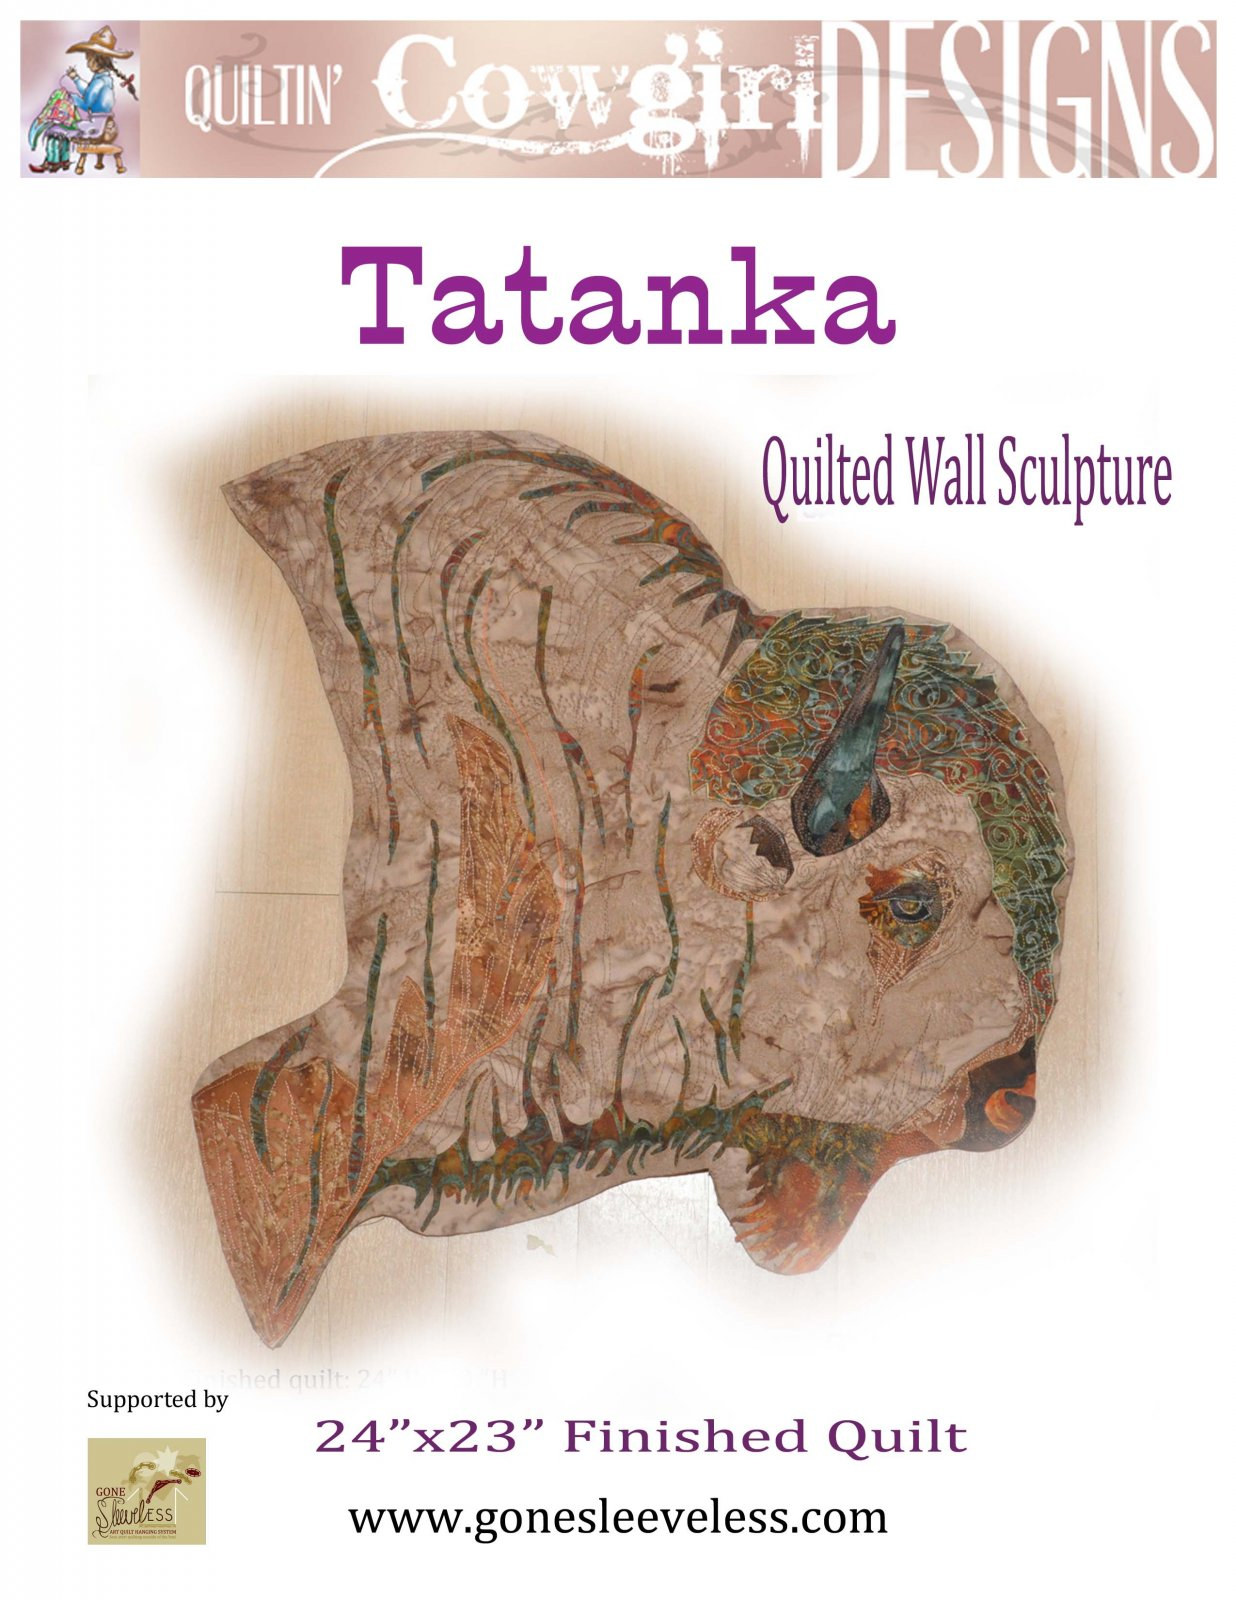 TATANKA QUILTED WALL SCULPTURE